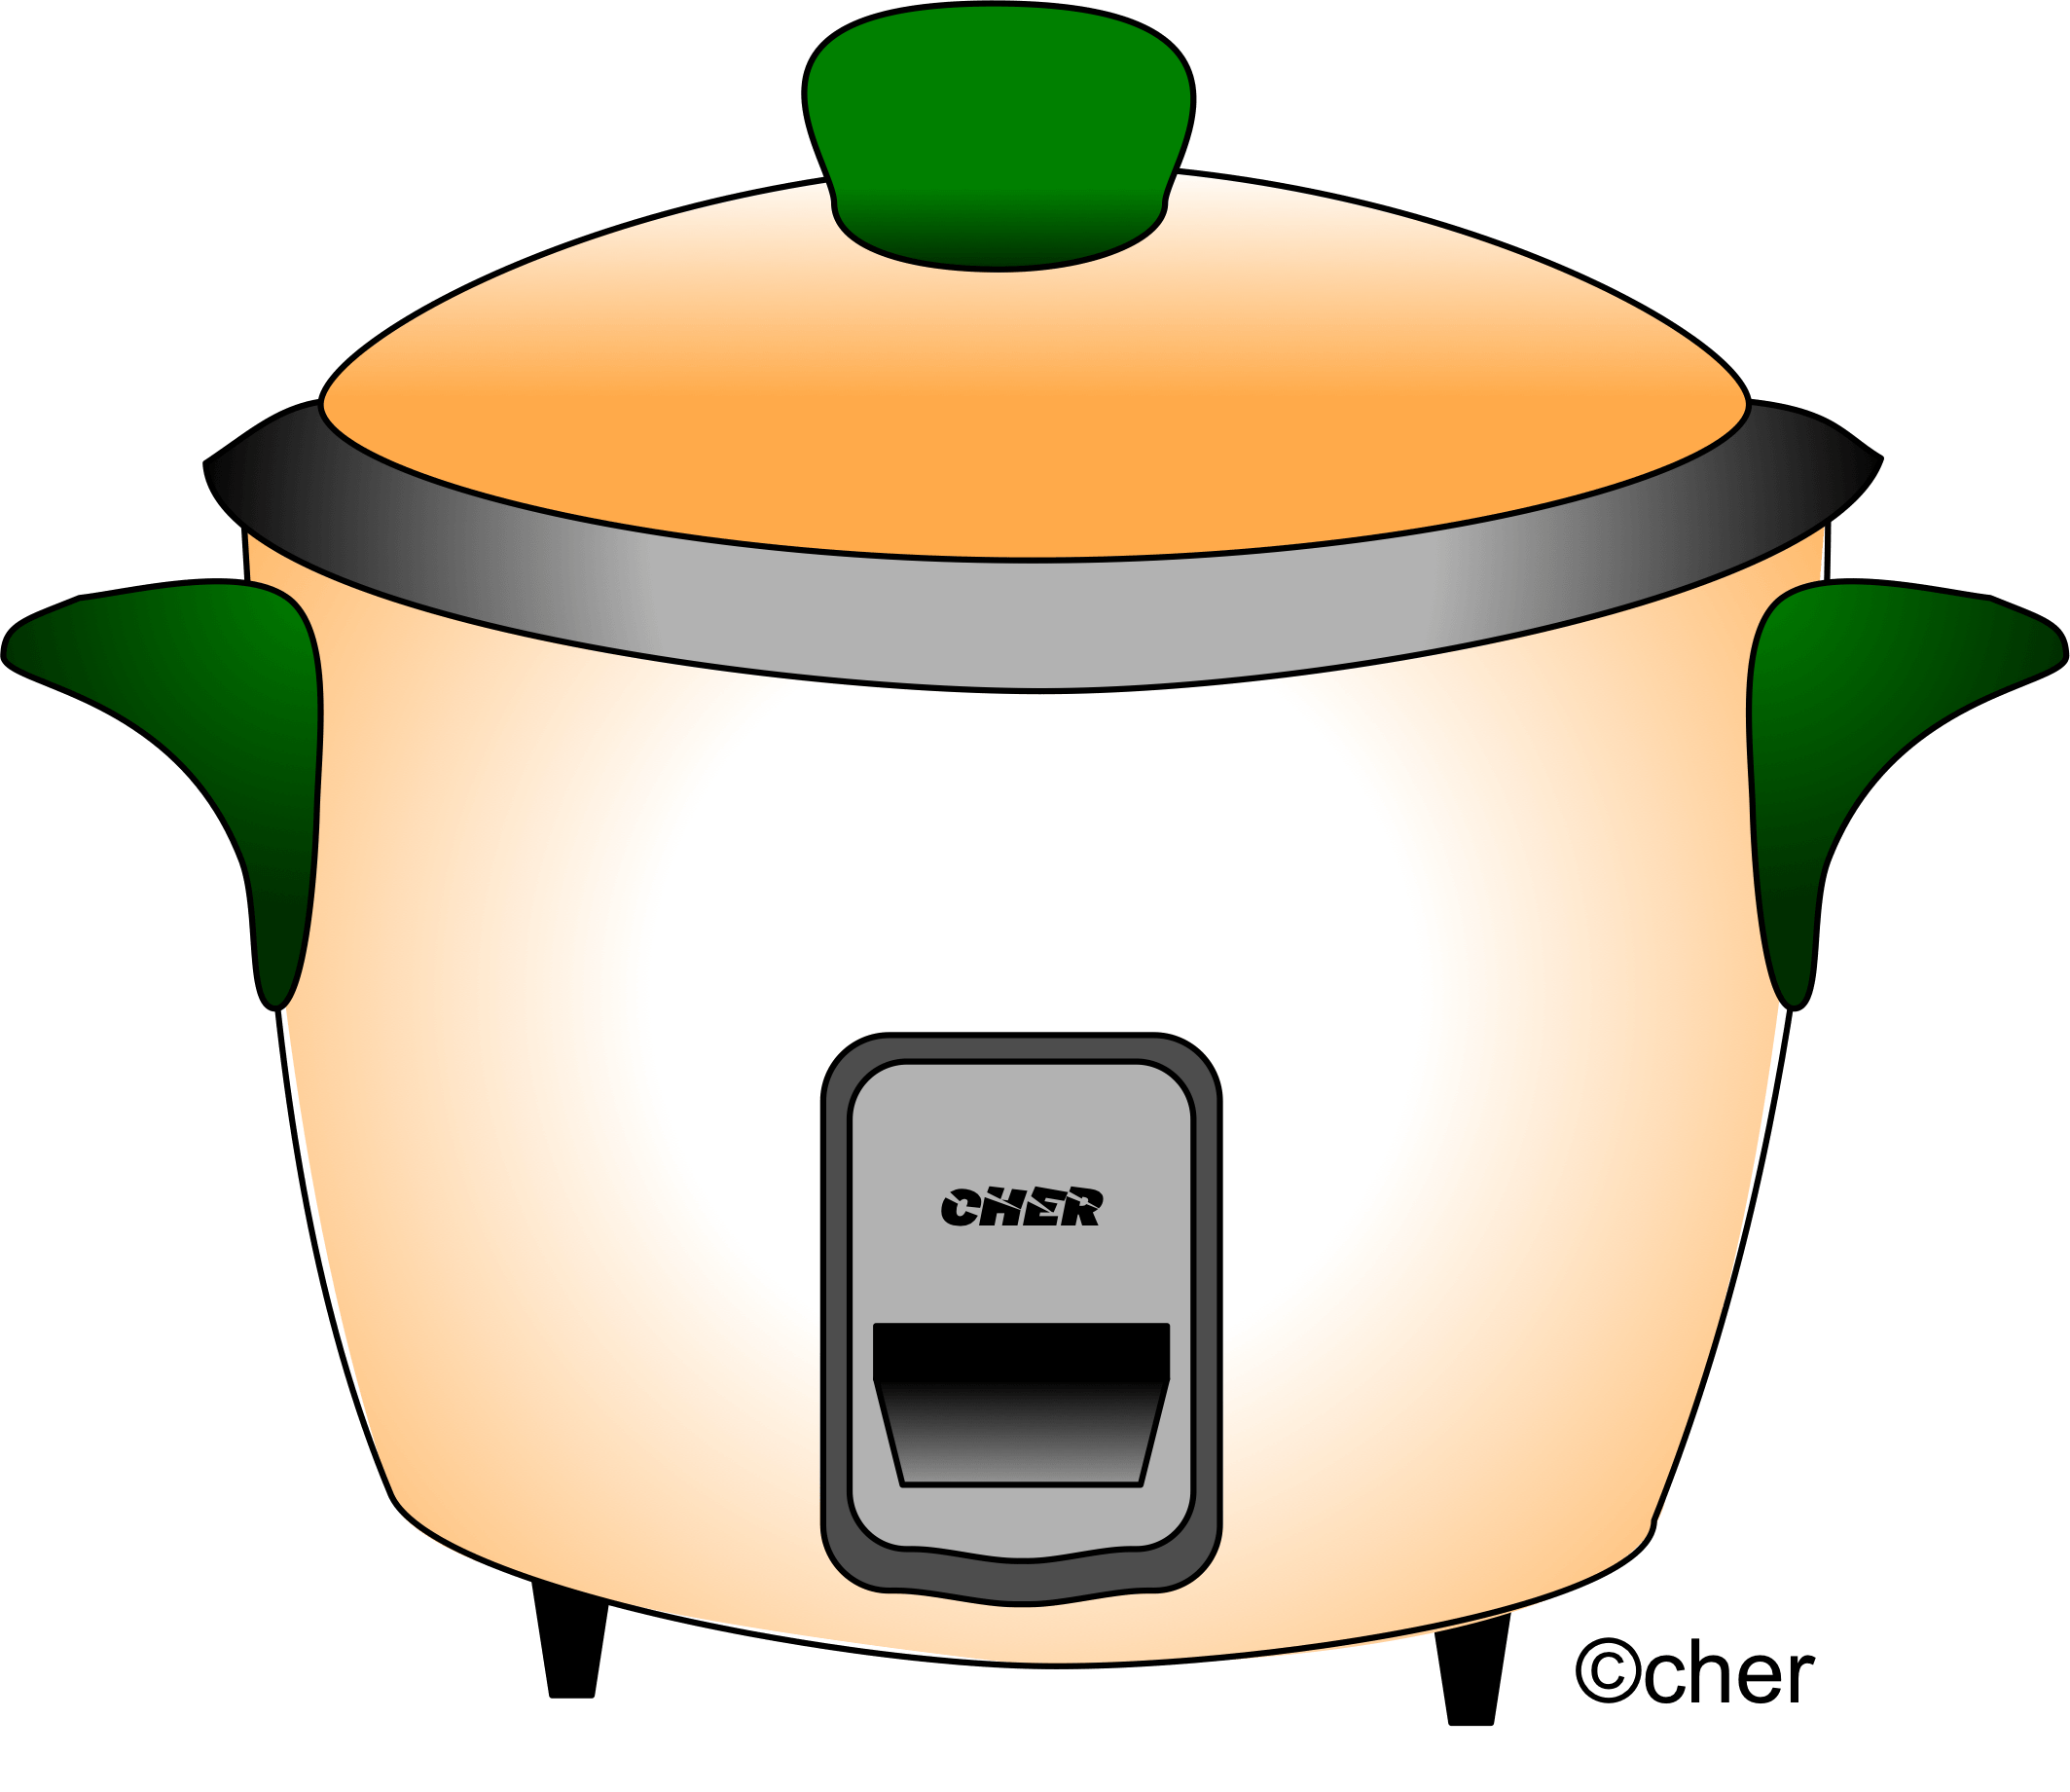 Rice cooker clipart.